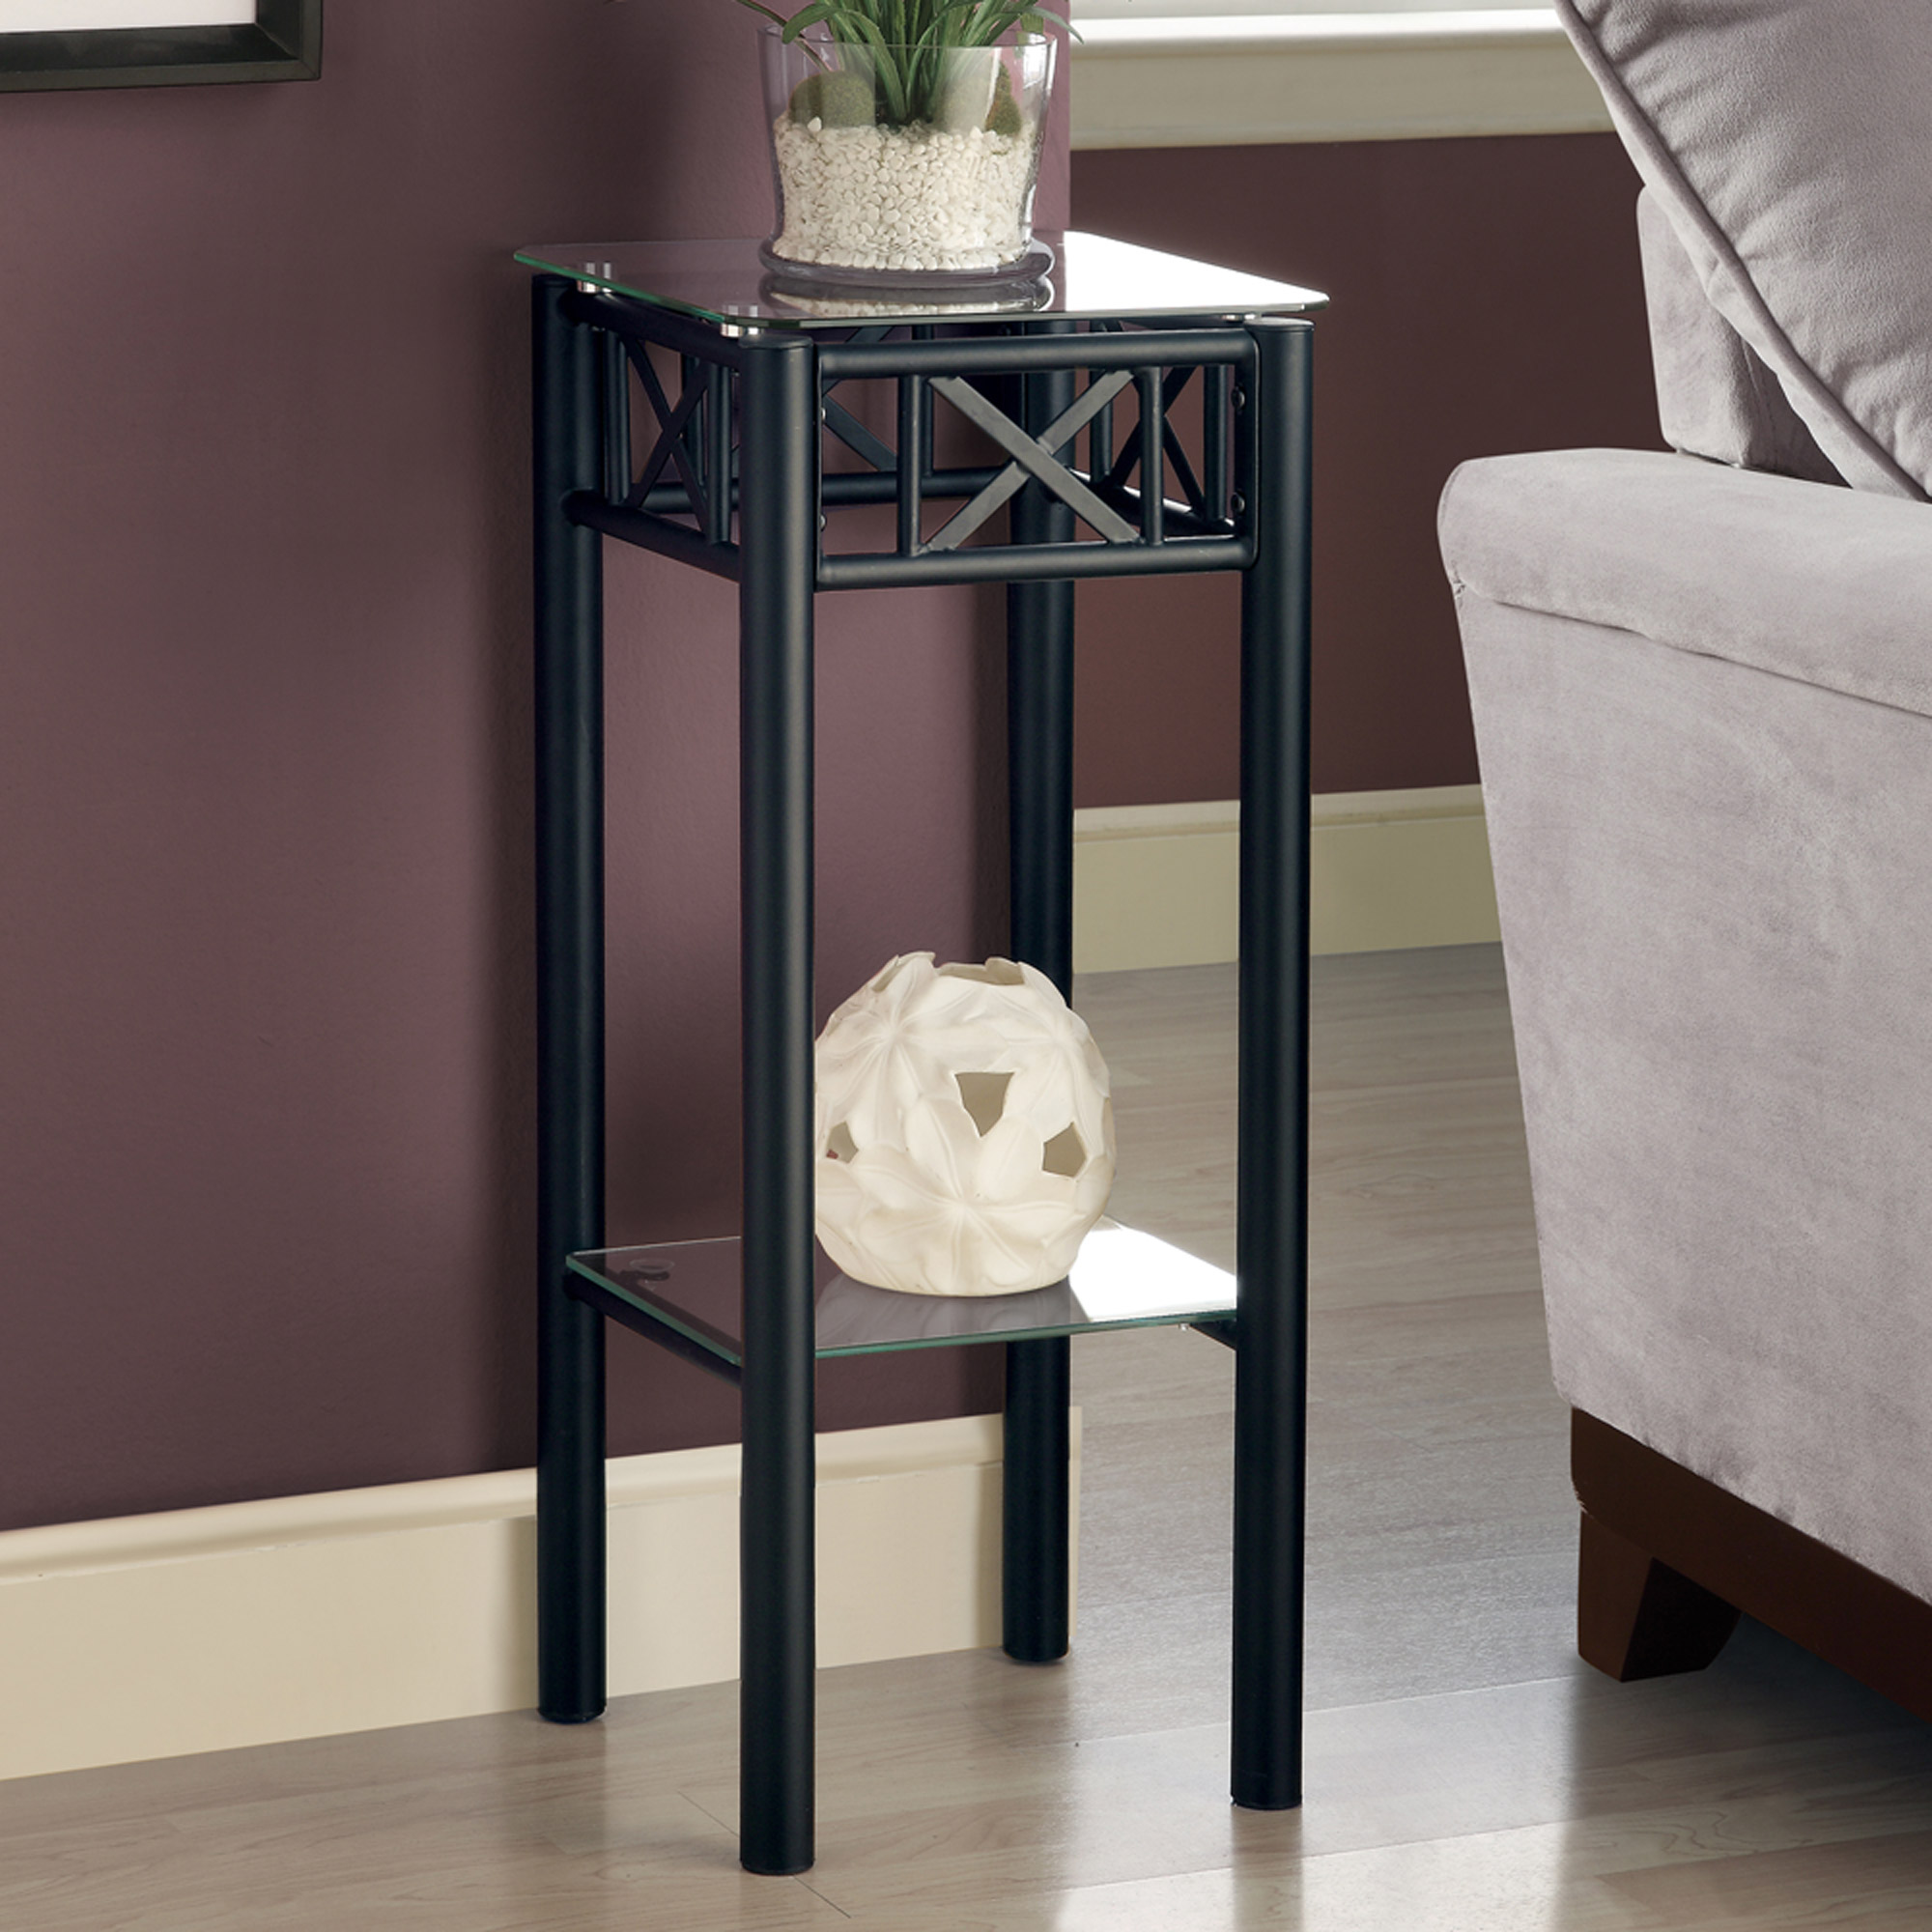 Metal Plant Stand with Tempered Glass Top, Black by Monarch Specialties Inc